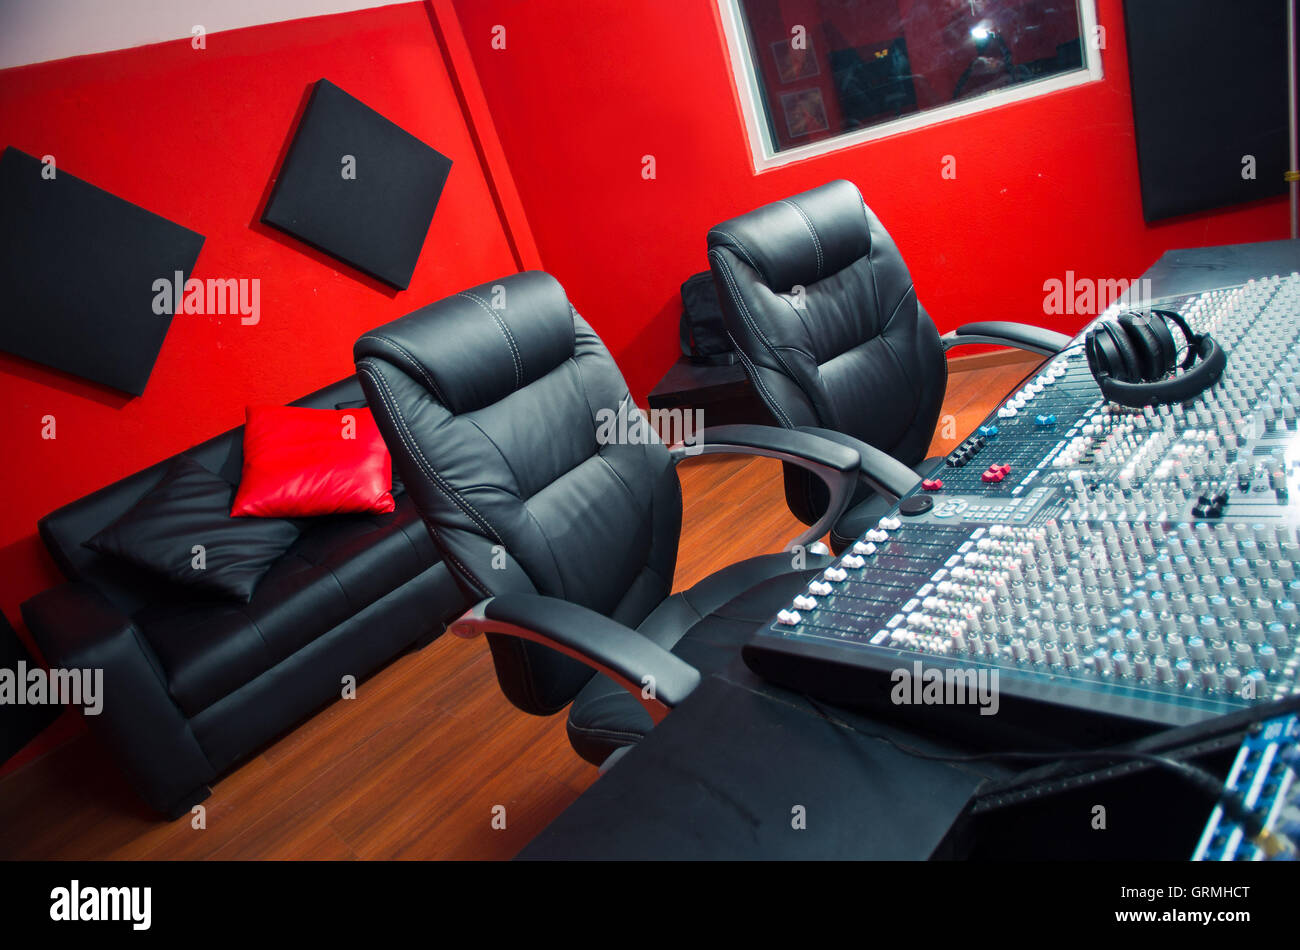 Classy Professional Recording Studio Setup Large Desk With Mixing